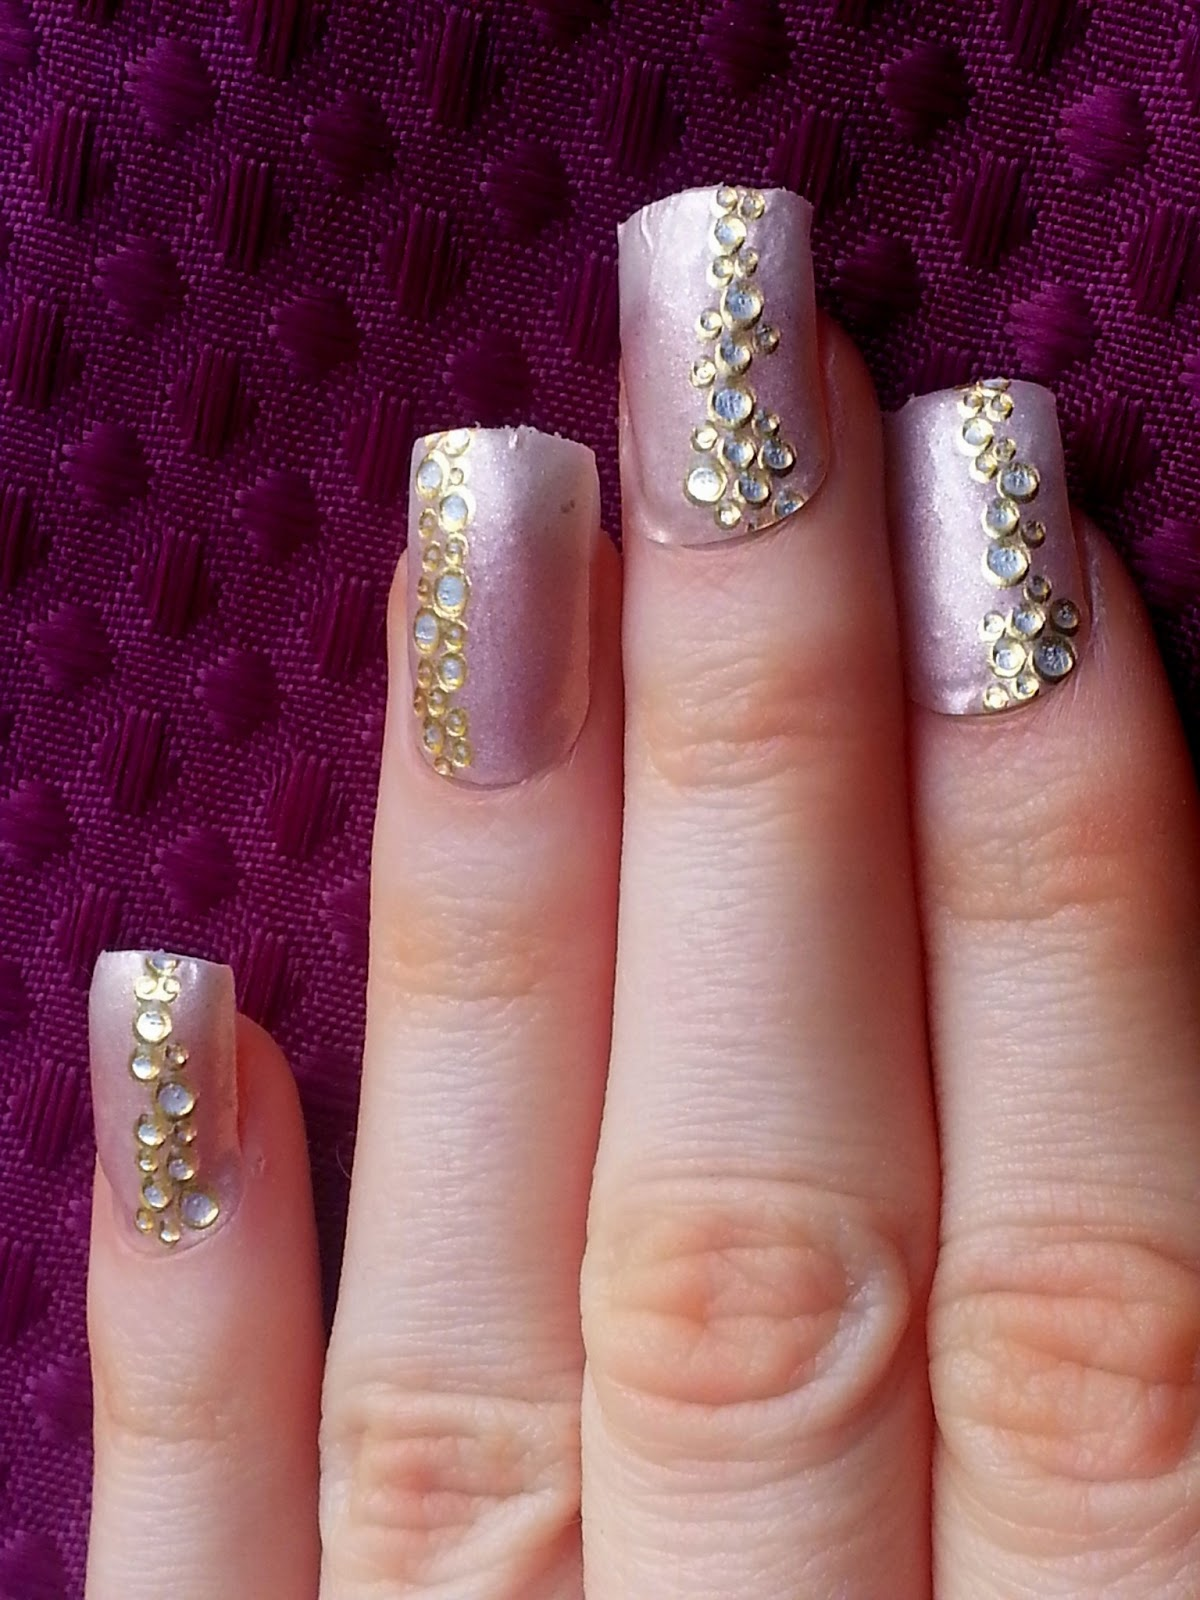 Manicure Monday: Kiss Nail Wrap | Heroine in Heels